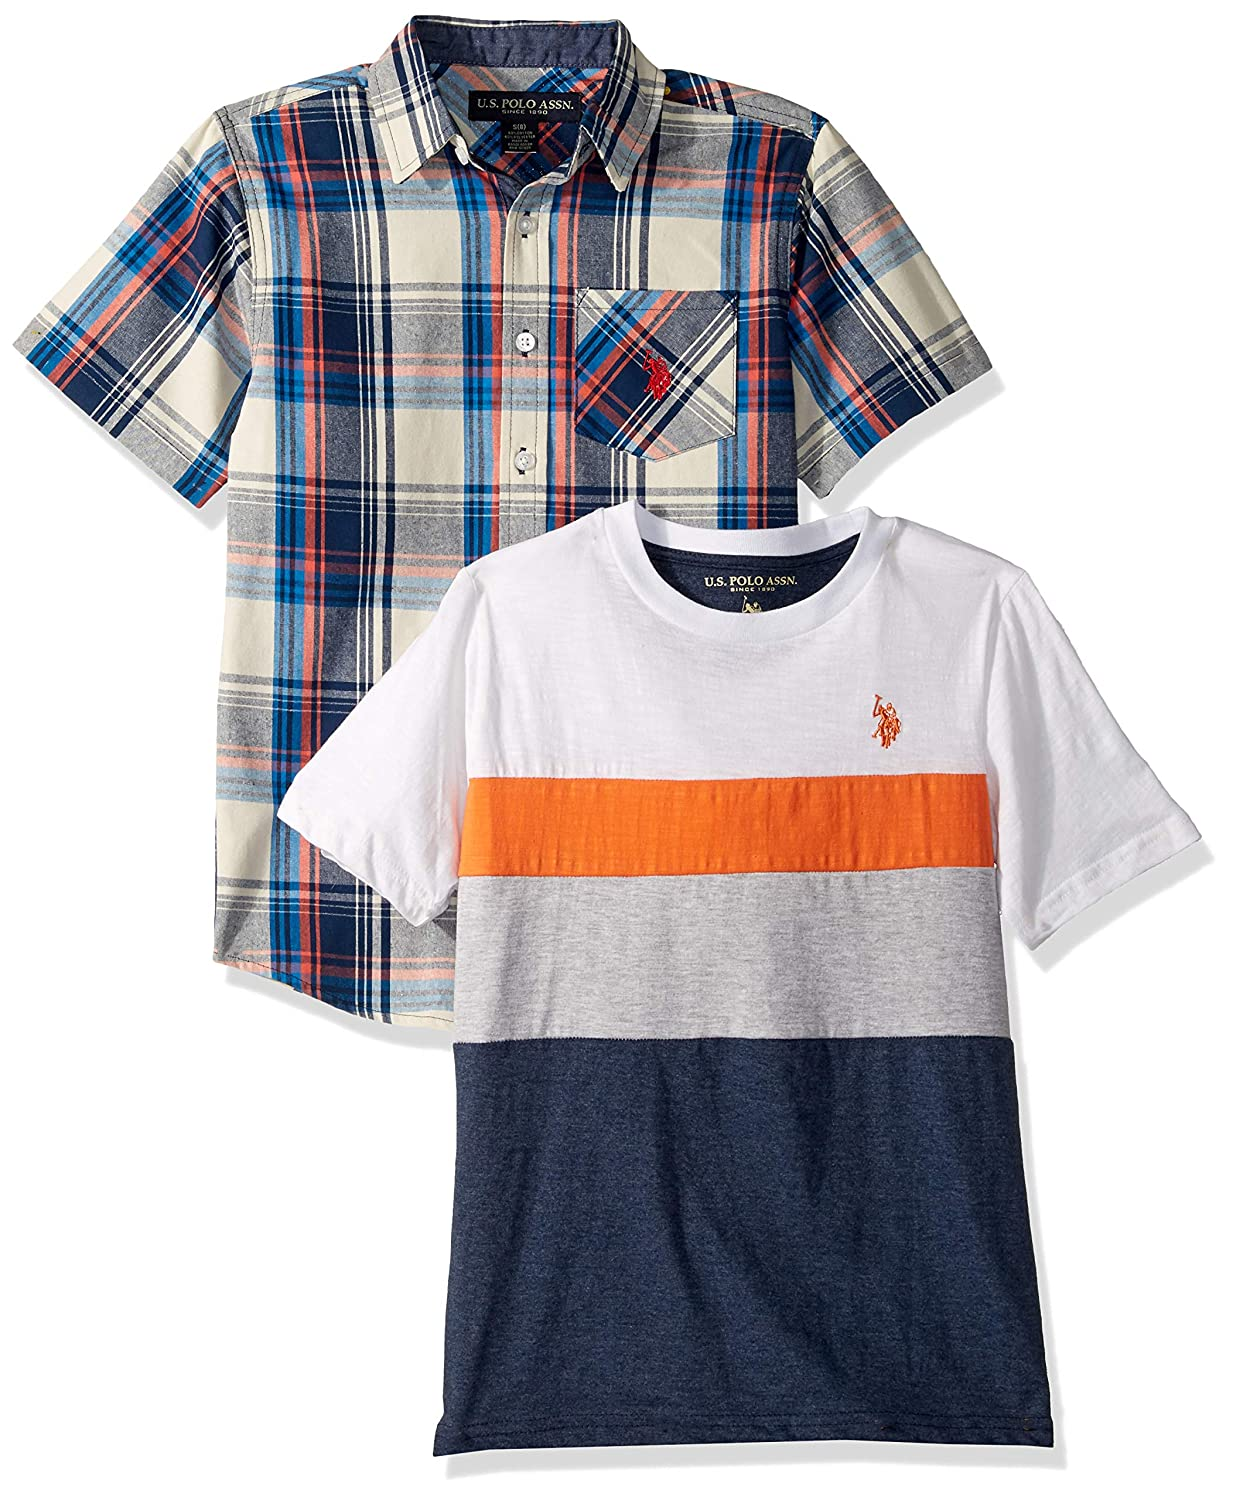 U.S Boys Short Sleeve Button Down Shirt 2 Piece Set Polo Assn